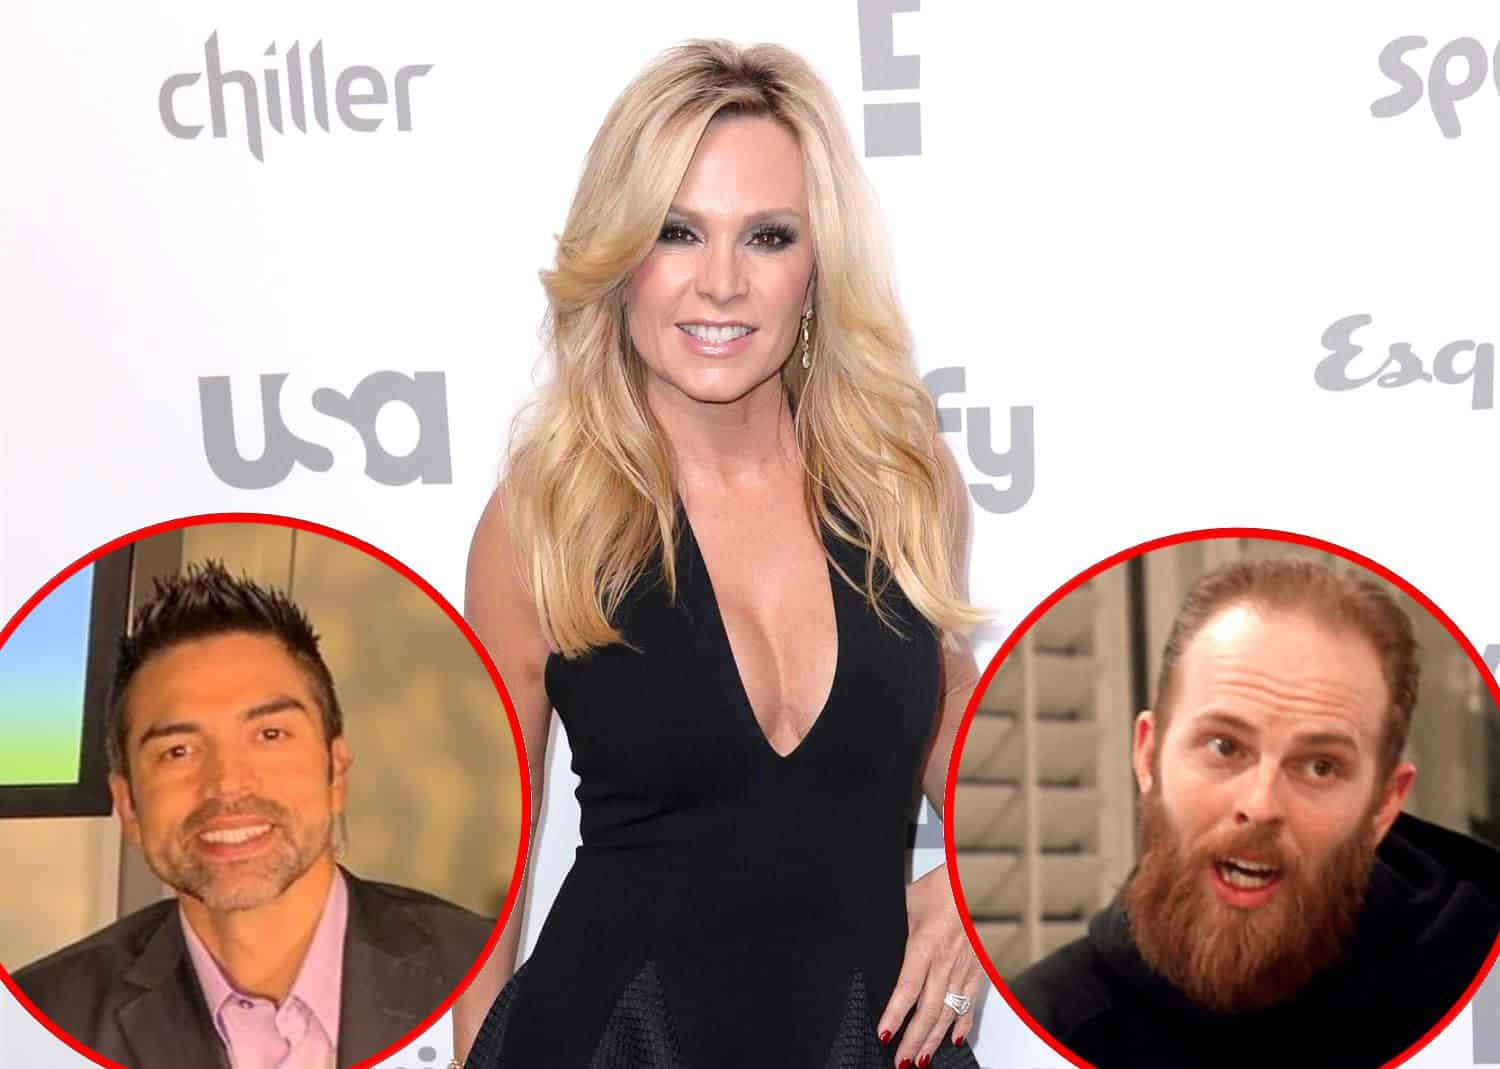 PHOTOS: Tamra Judge Confirms RHOC Return as Husband Eddie Judge and Son Ryan Vieth Make Amends